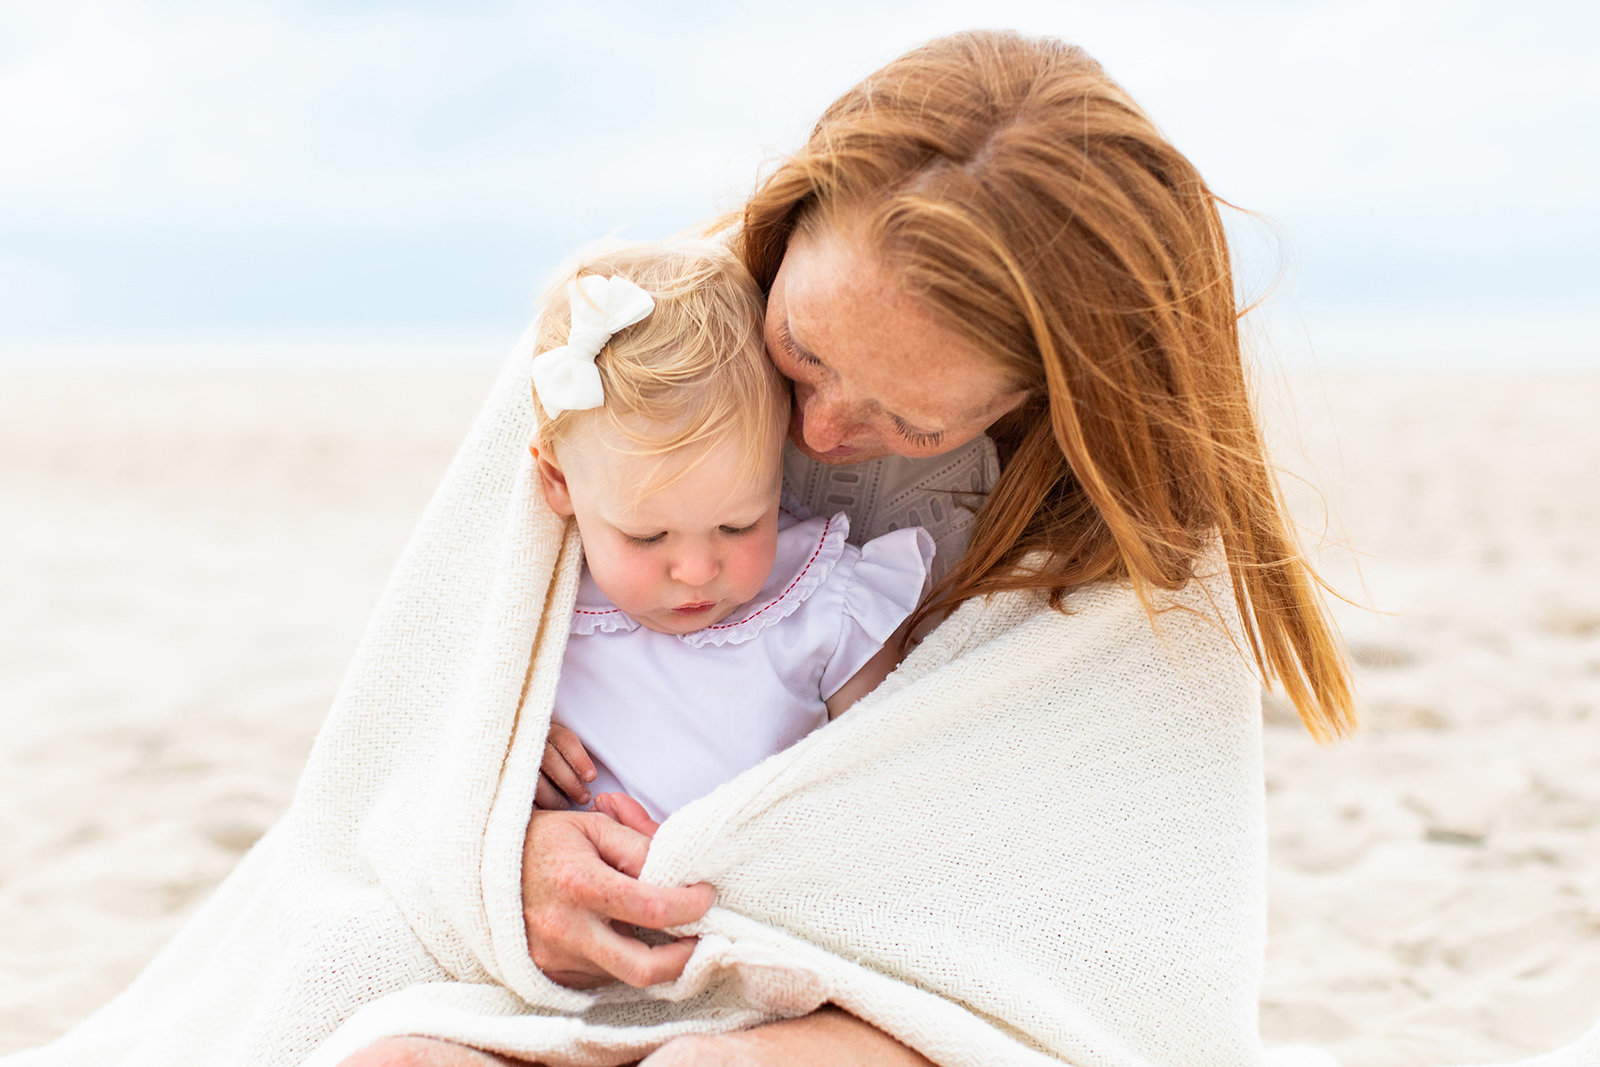 mother sitting on beach with her toddler daughter